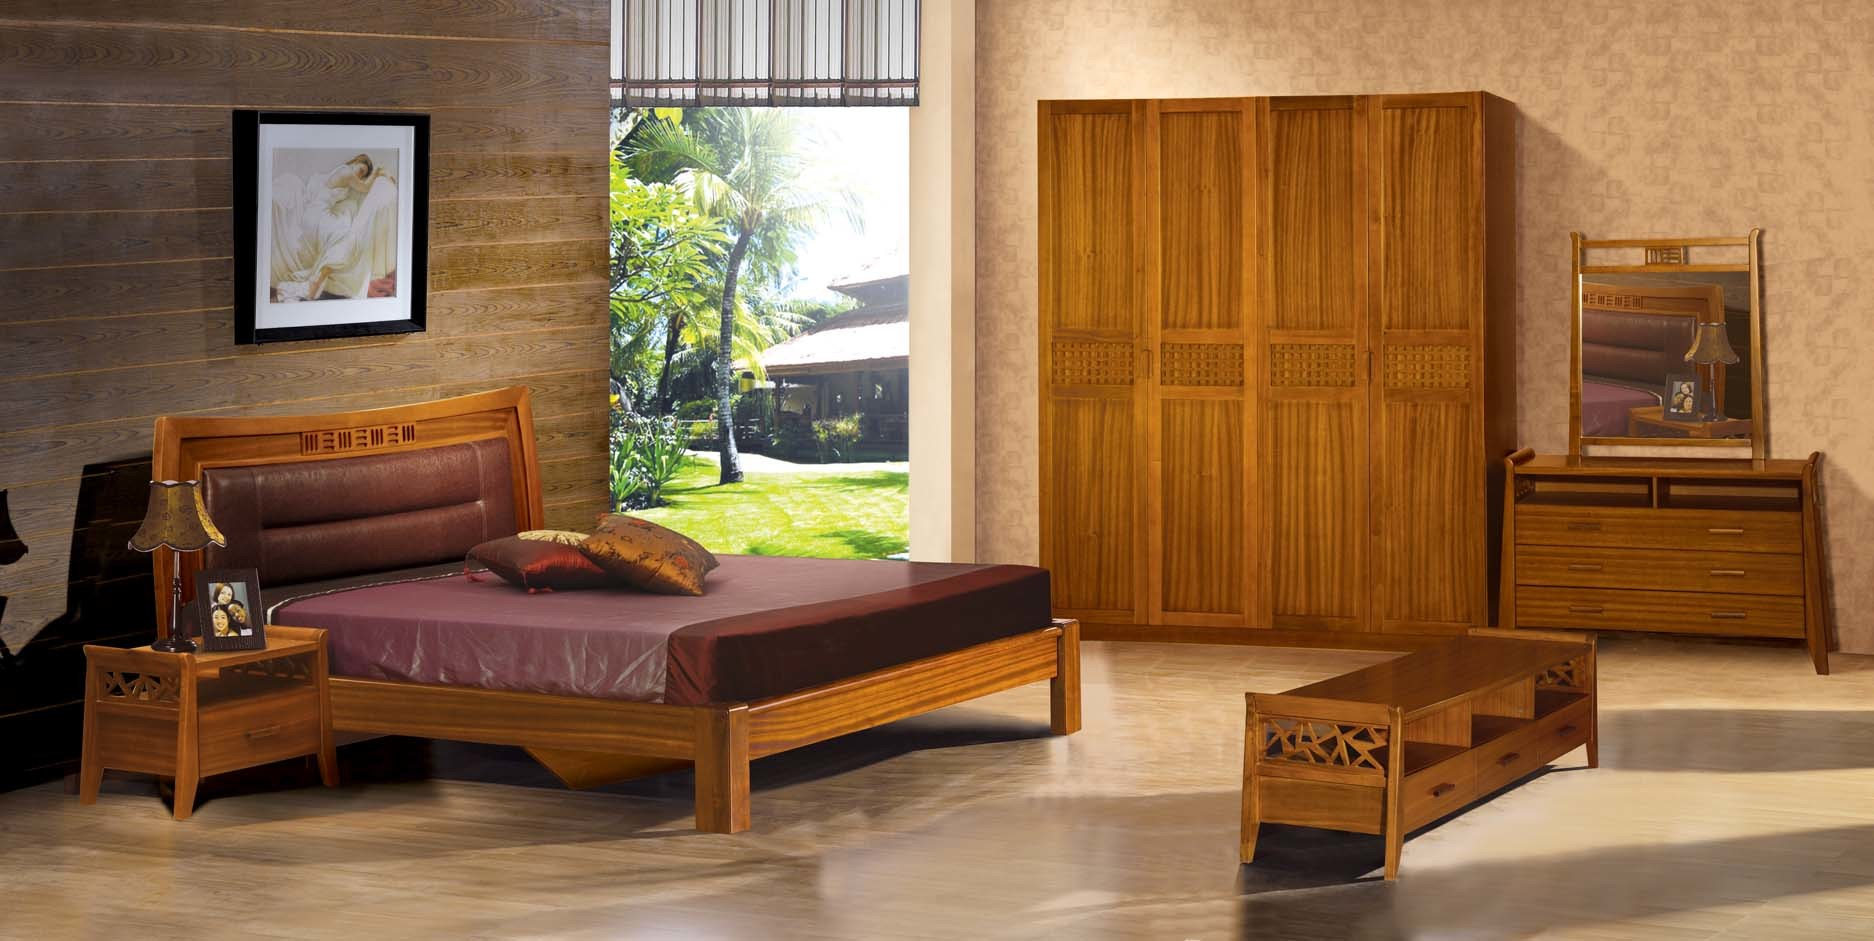 Brilliant Teak Bedroom Furniture Sets 1874 x 941 · 252 kB · jpeg